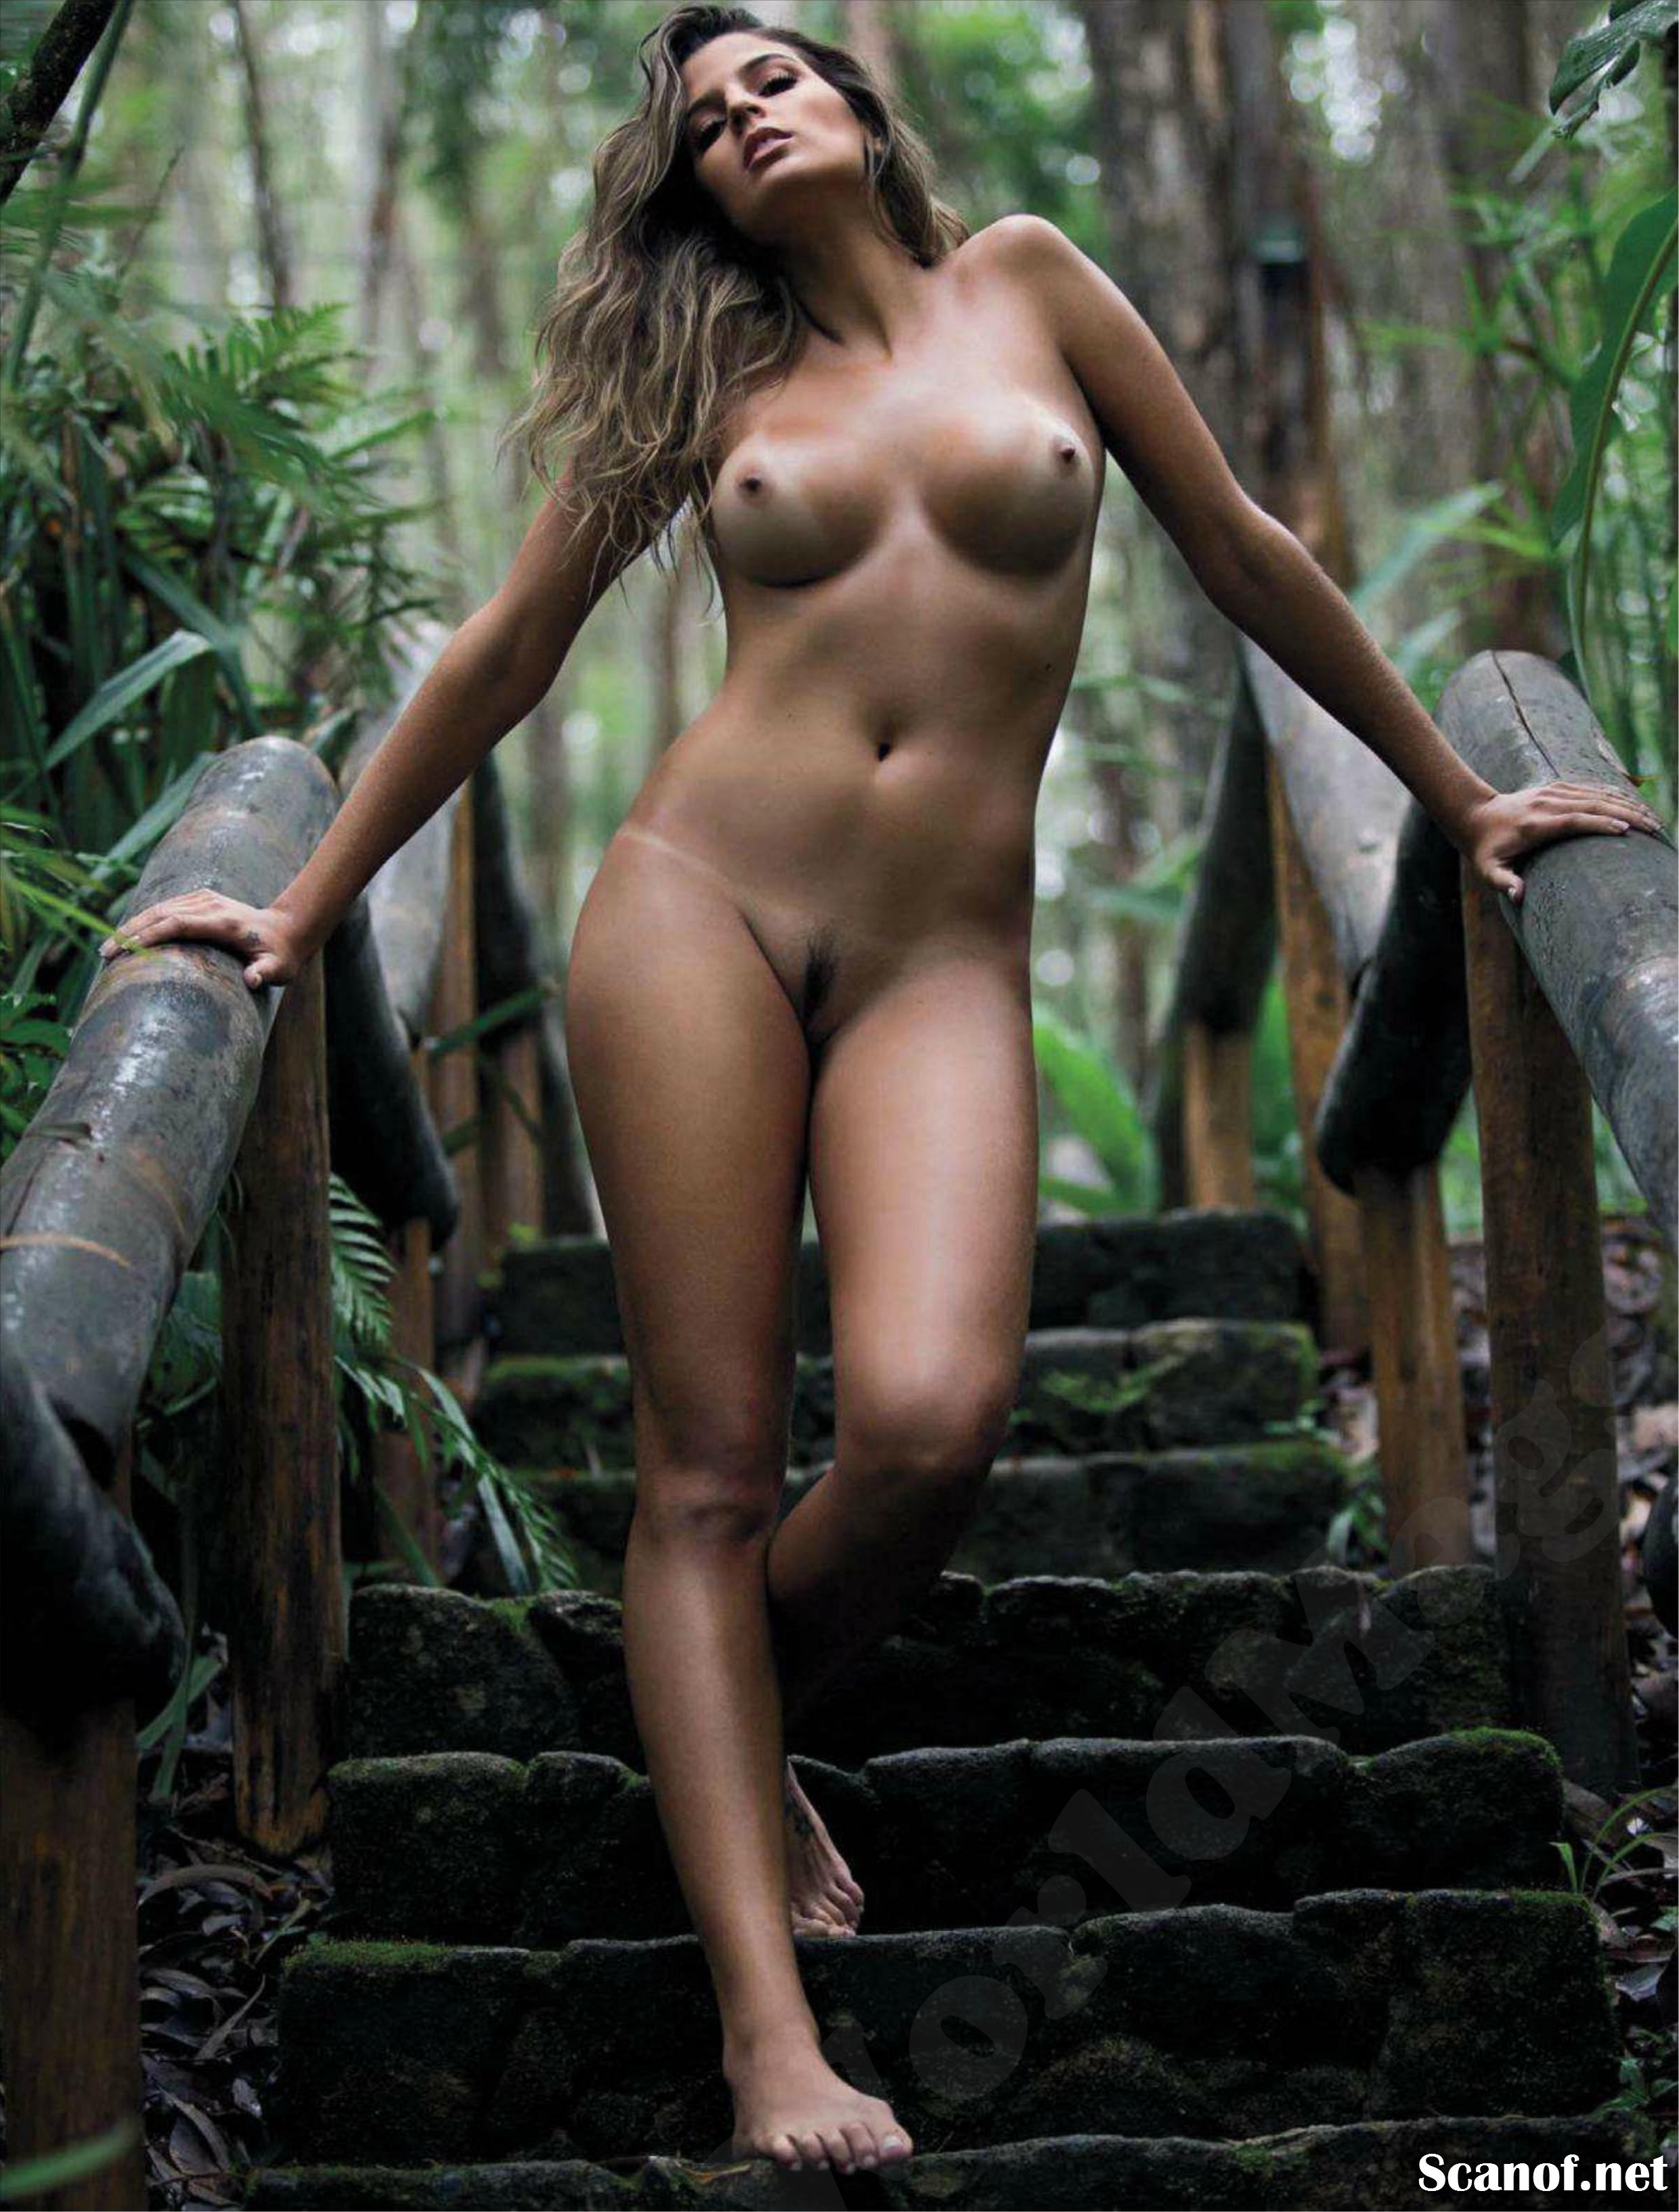 Playboy_2012-07_Brazil_Scanof.net_079.jpg